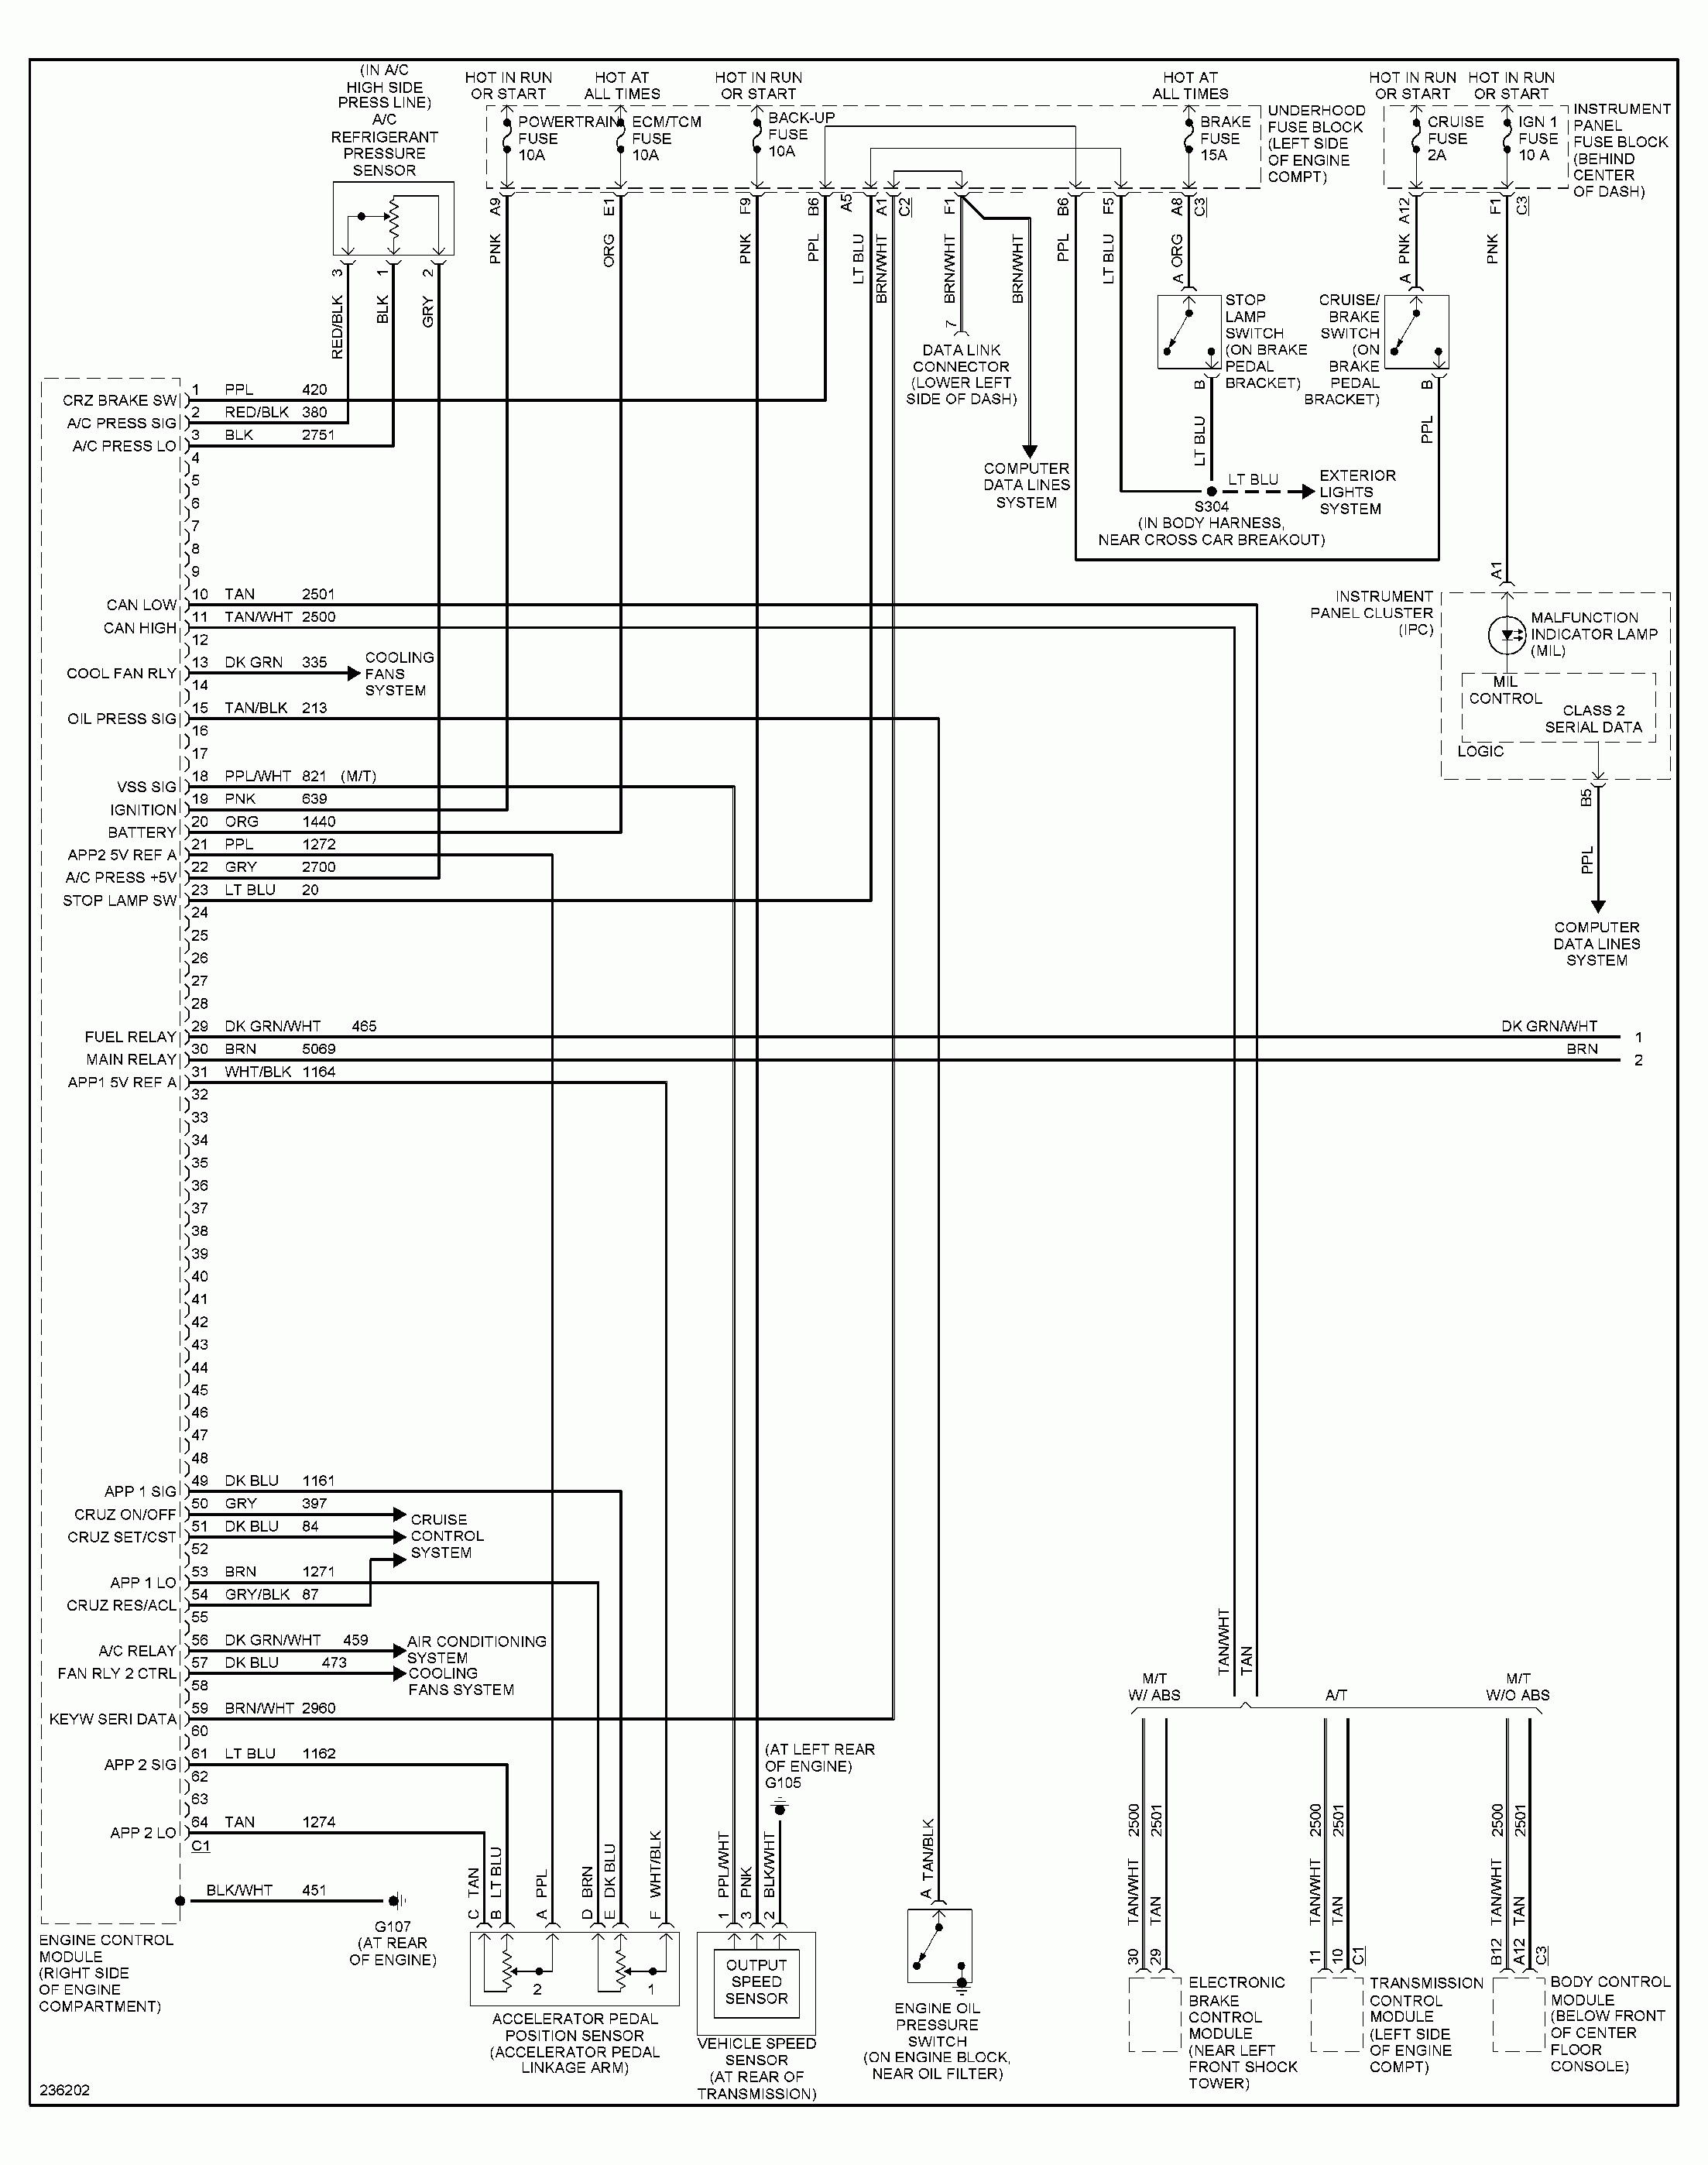 2004 Saturn Ion Engine Diagram Cool Review About 2004 Saturn Vue with Fabulous S Of 2004 Saturn Ion Engine Diagram